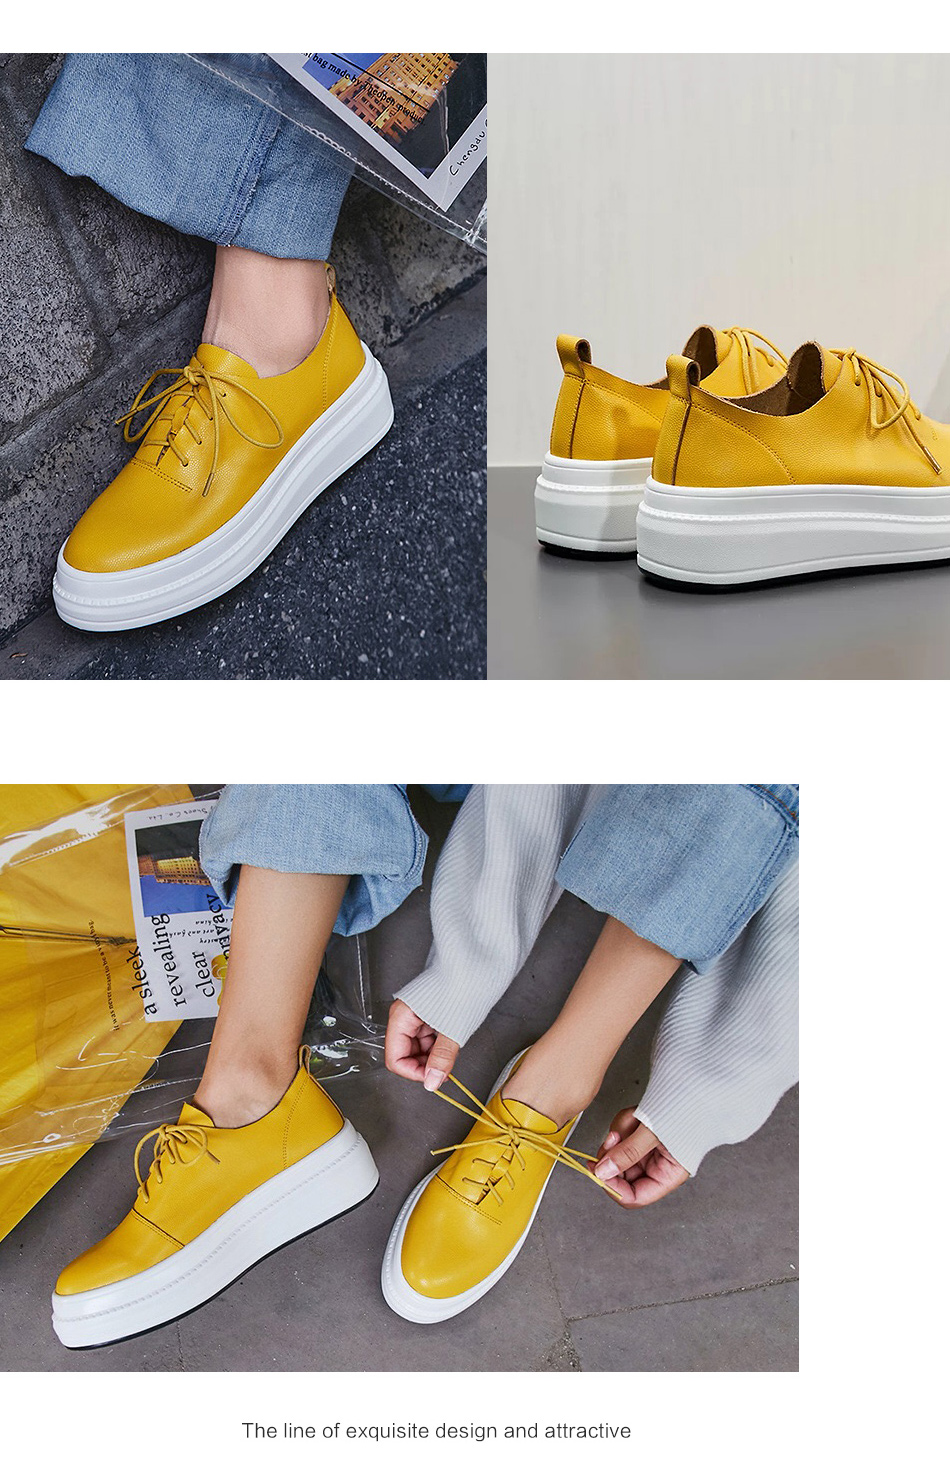 Donna-in Women Flats Shoes Platform Sneakers Shoes Genuine Leather Spring Fashion Sneakers Creepers Lace-up Comfortable Shoes (8)